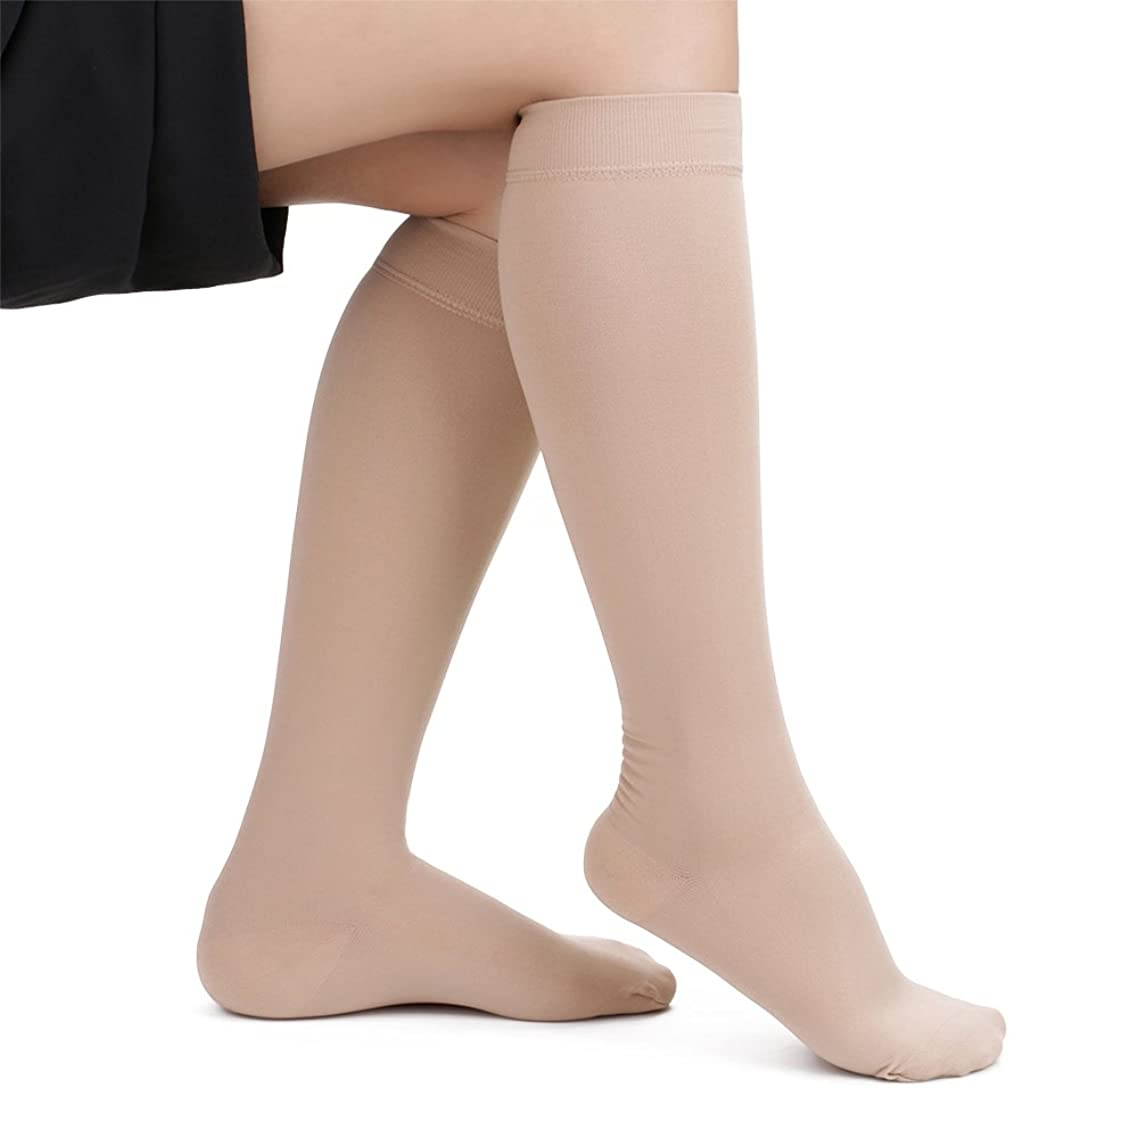 SWOLF Open Toe Compression Socks for Women & Men, 20-30 mmHg Medical Gradient Compression Stockings Toeless Knee High - 15-20mmhg Maternity Nursing Firm Support Hose Relief Moderate Varicose Veins